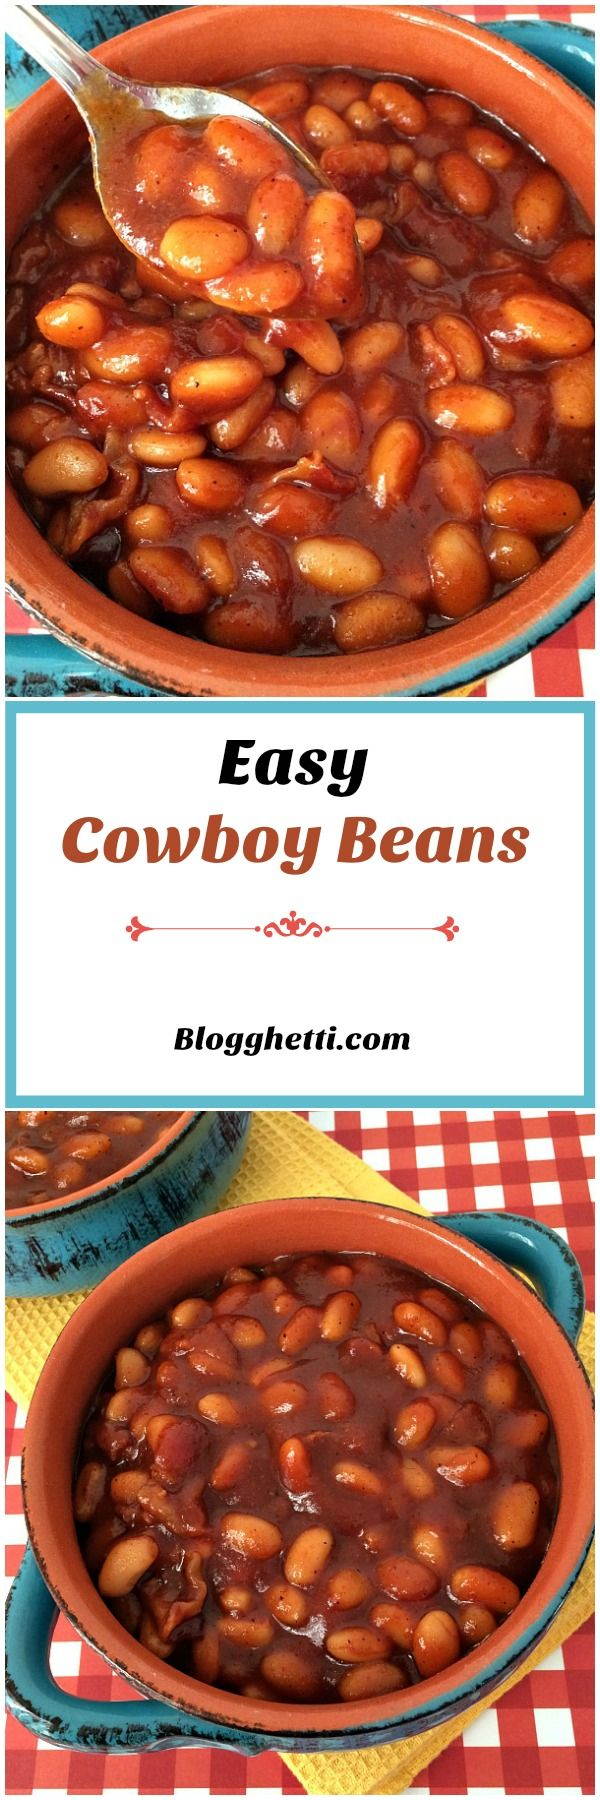 These Cowboy Beans have a sweet and tangy taste to them thanks to the honey and…